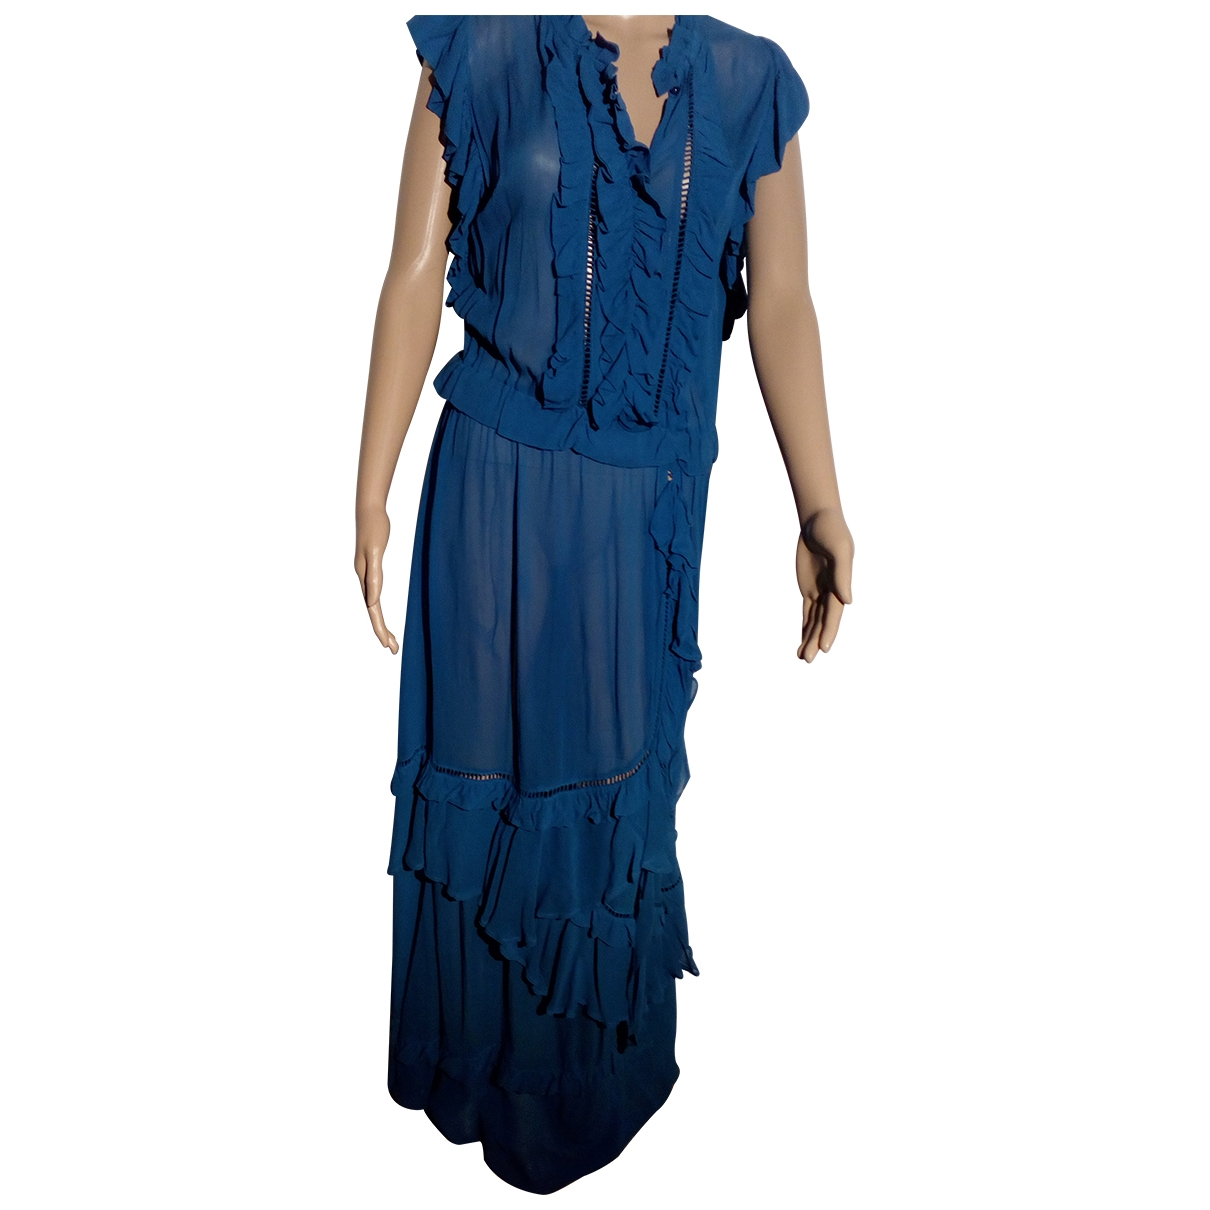 Munthe \N Blue dress for Women 38 FR